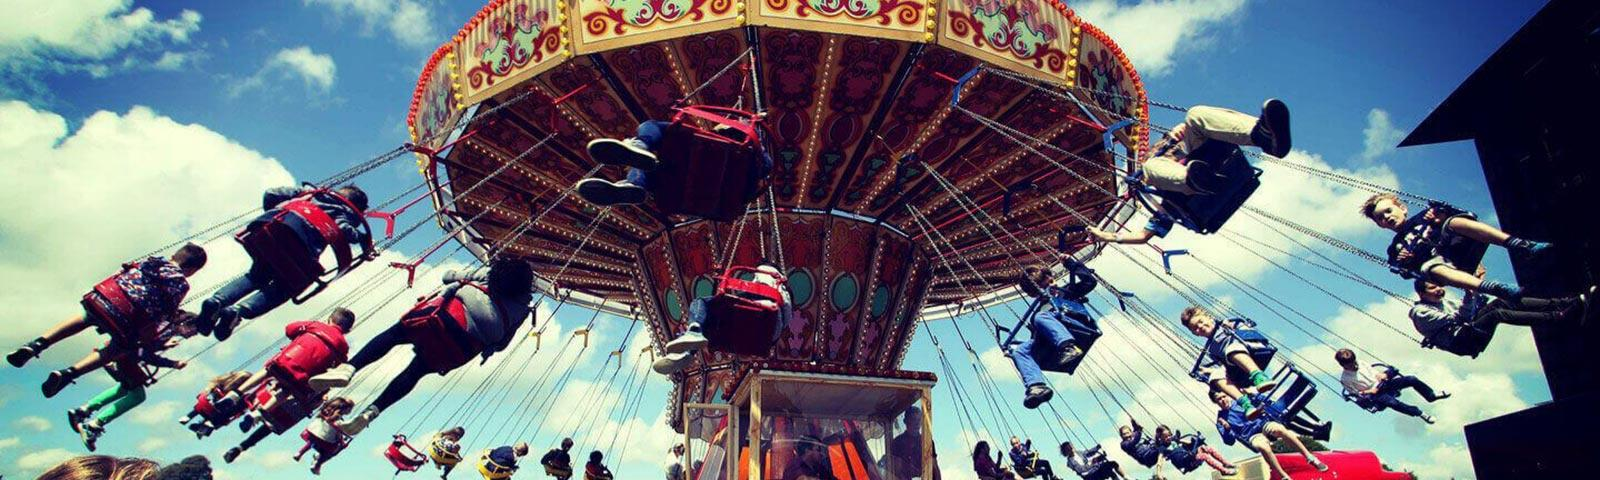 Kids sitting on a fun fair ride at an family event at Fontwell Park Racecourse.